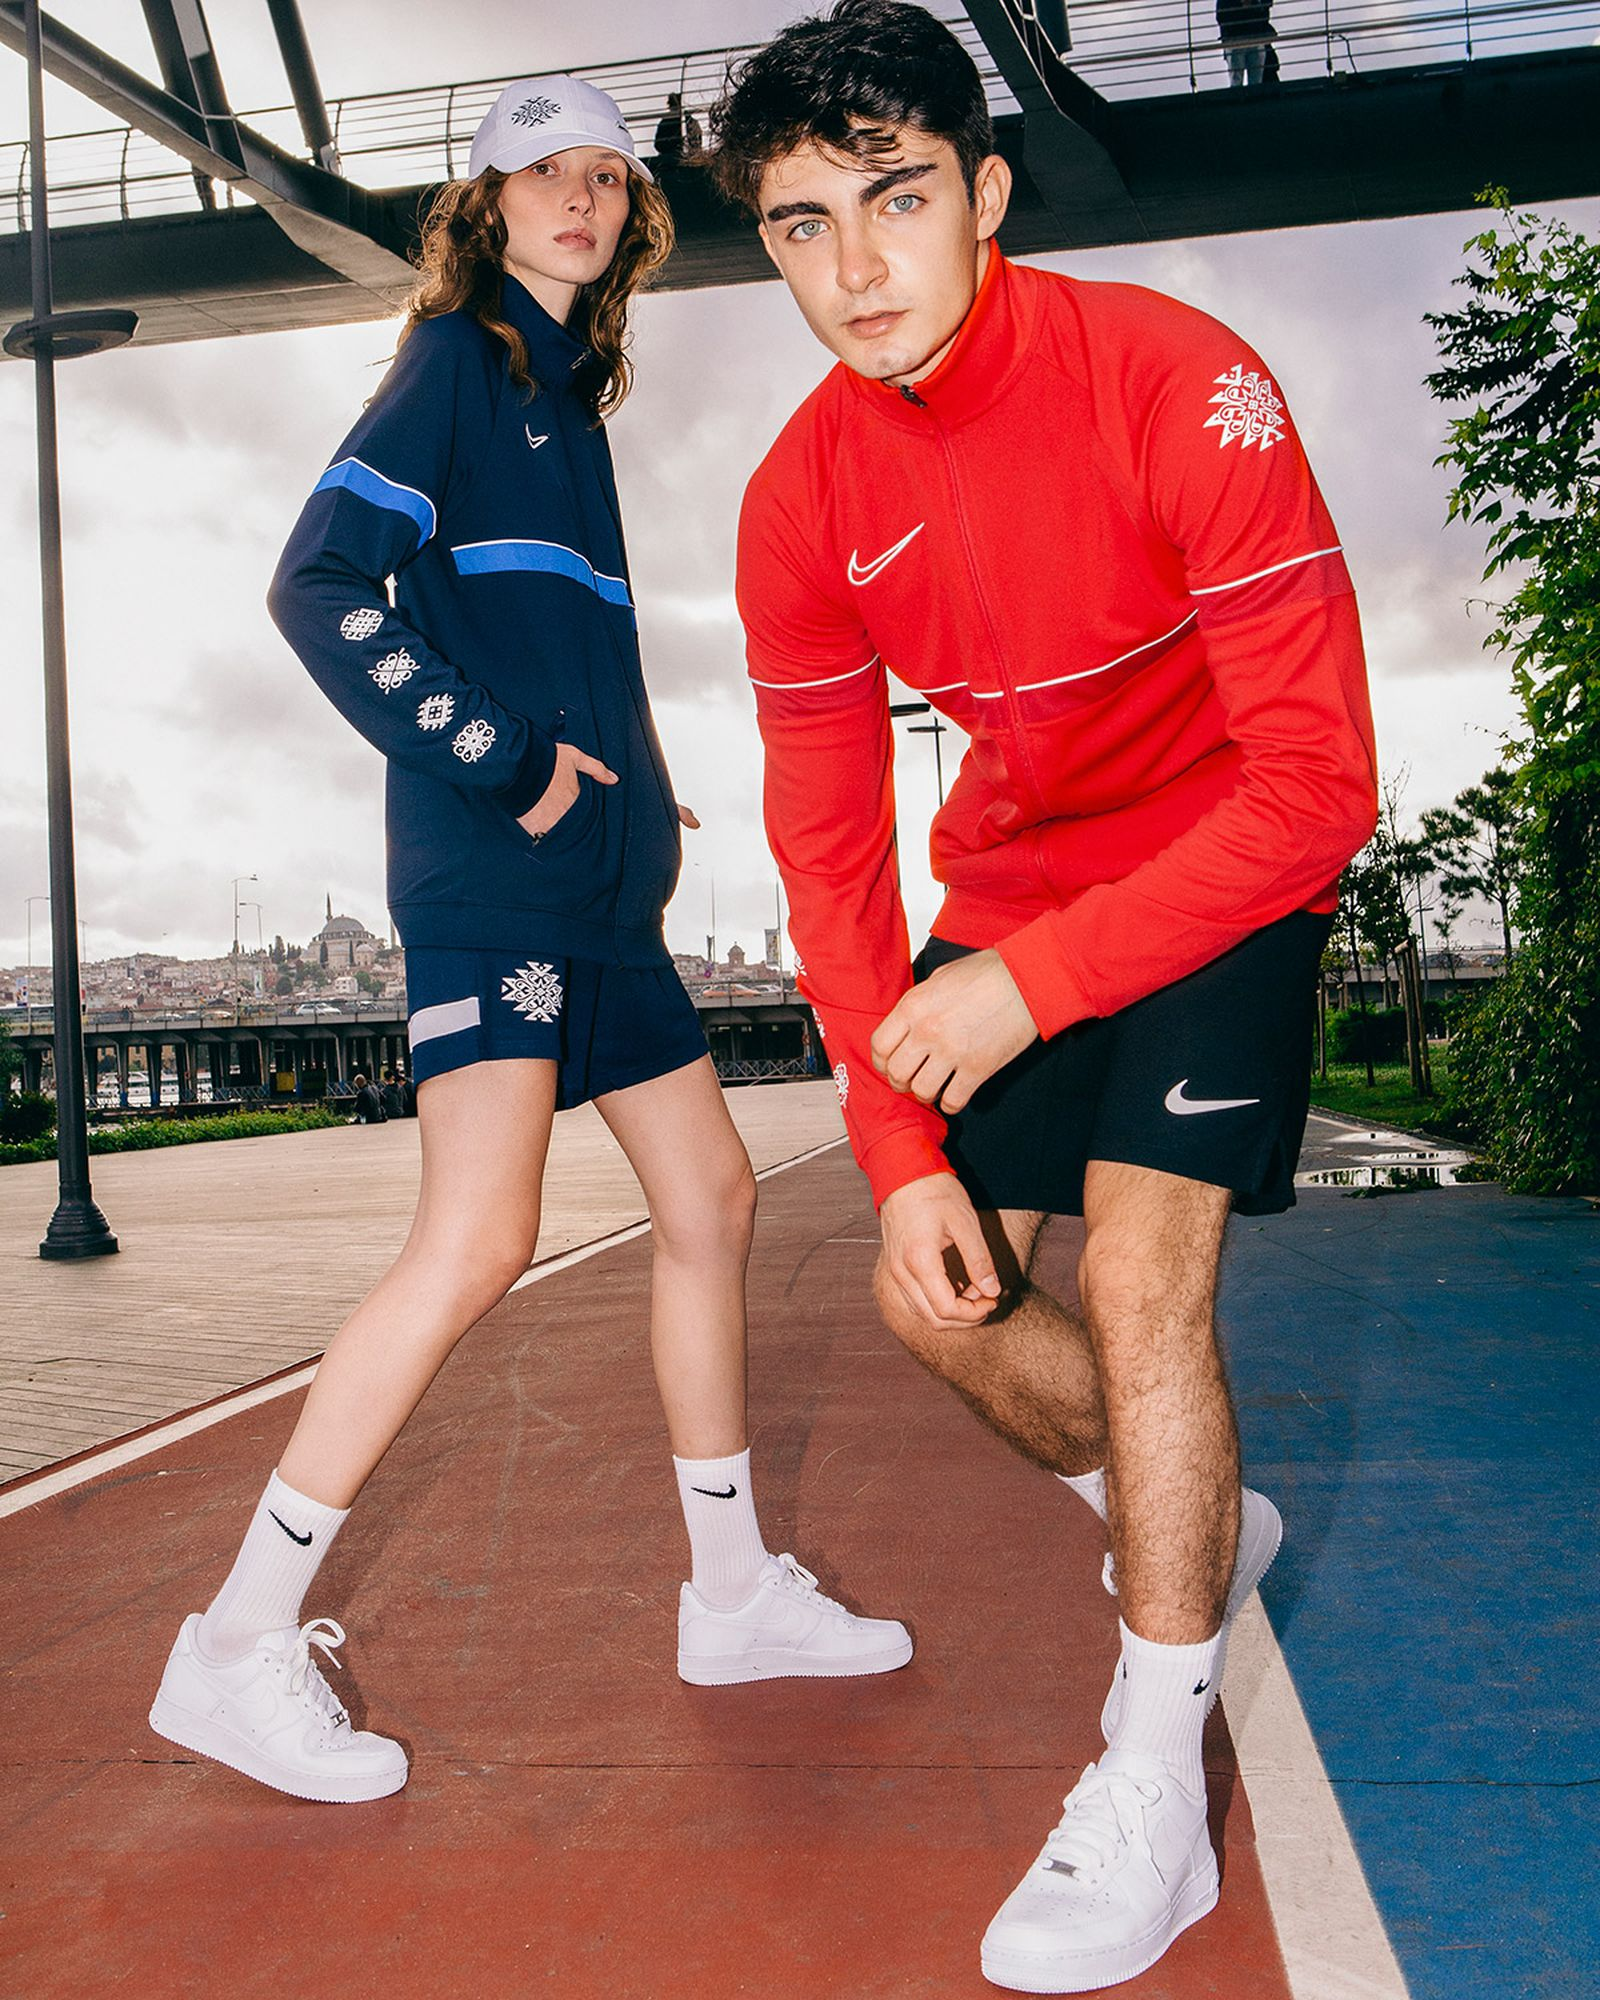 les-benjamins-made-this-years-coolest-olympics-uniforms-then-designed-a-plane-main